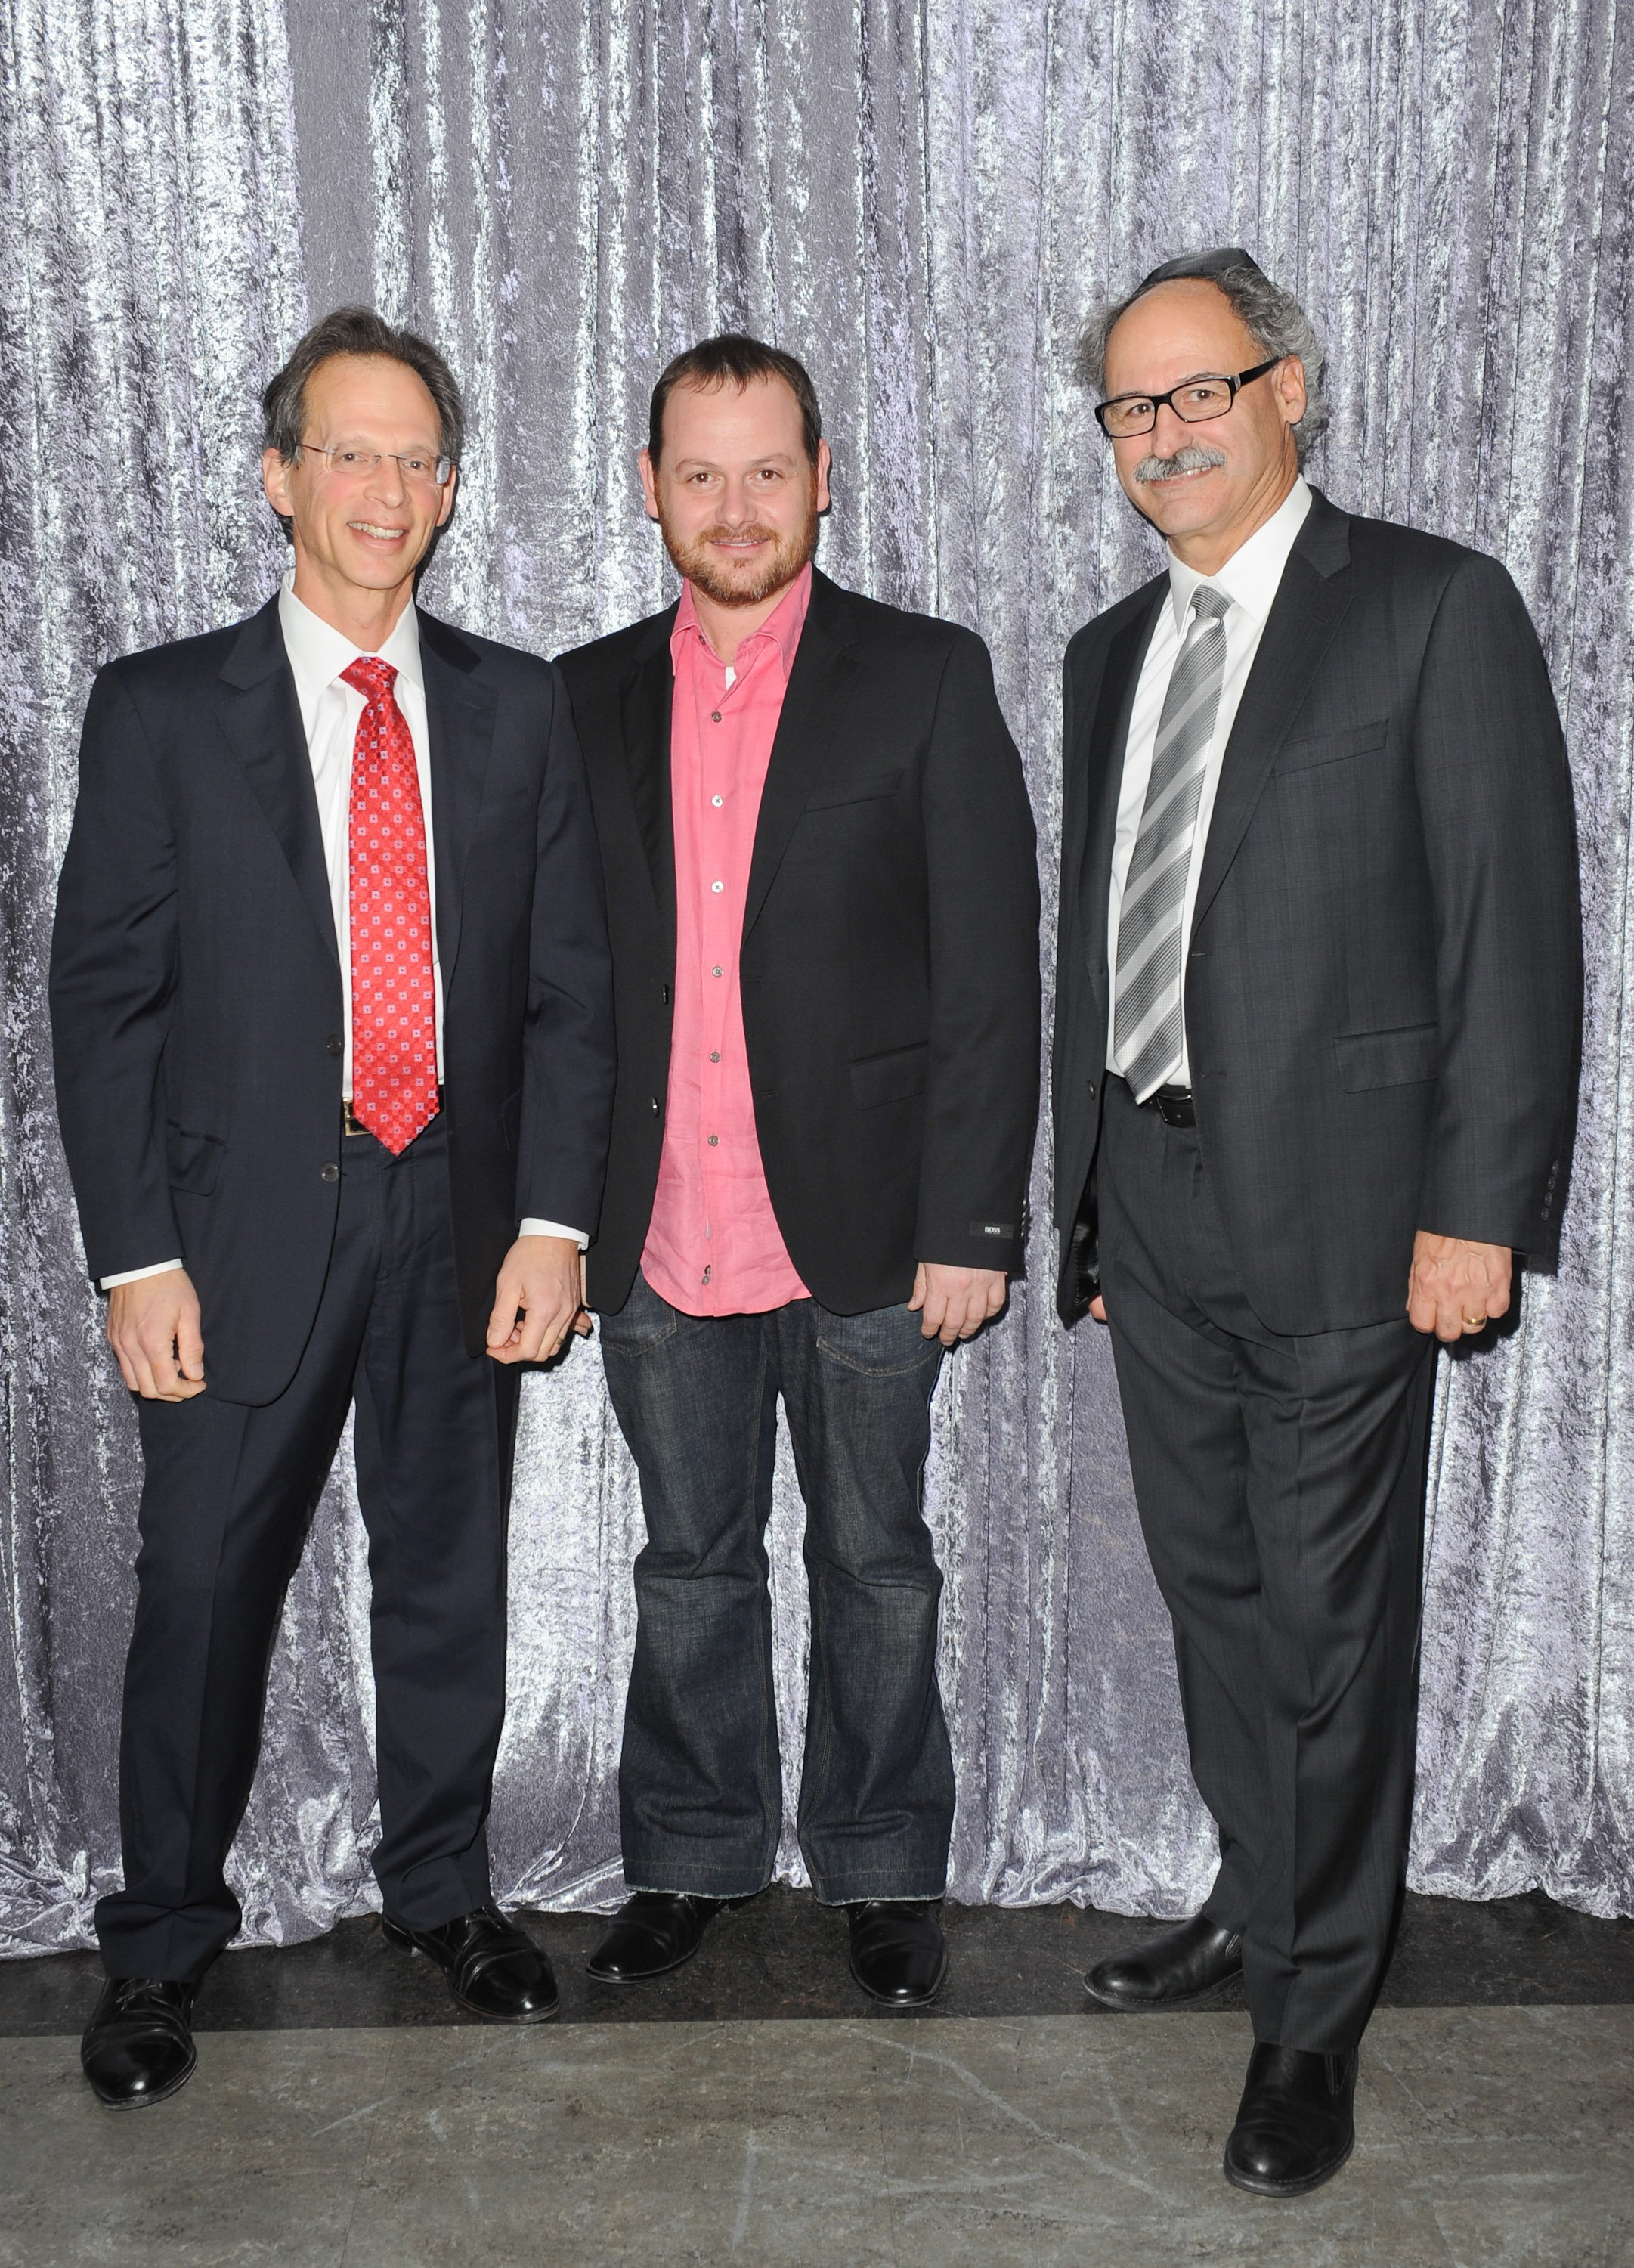 (left to right)Event Co-chair, Norman Bacal, HOMELAND's Gideon Raff and Event Co-Chair, Bernie Abrams